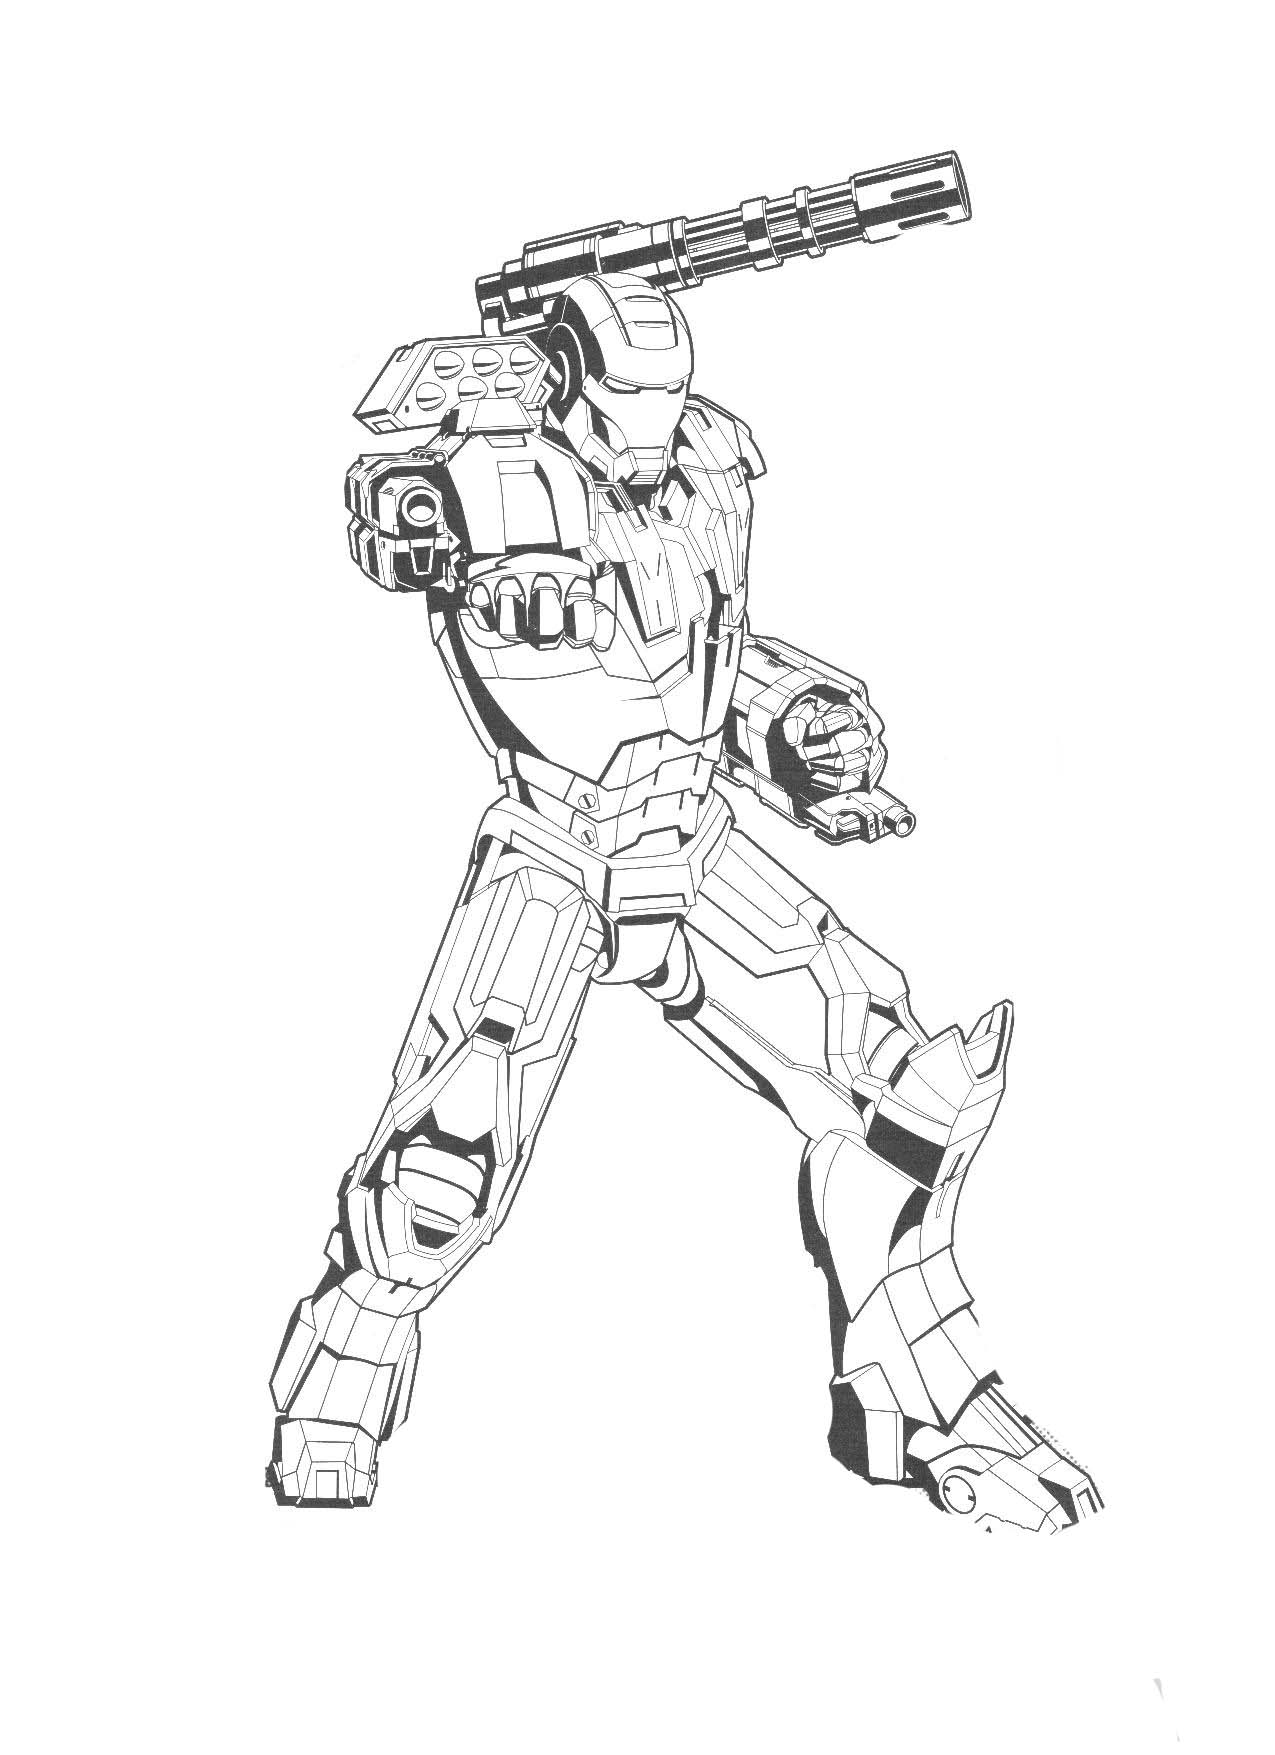 iron man free coloring pages free coloring pages for kids 100 new iron man coloring coloring iron man free pages